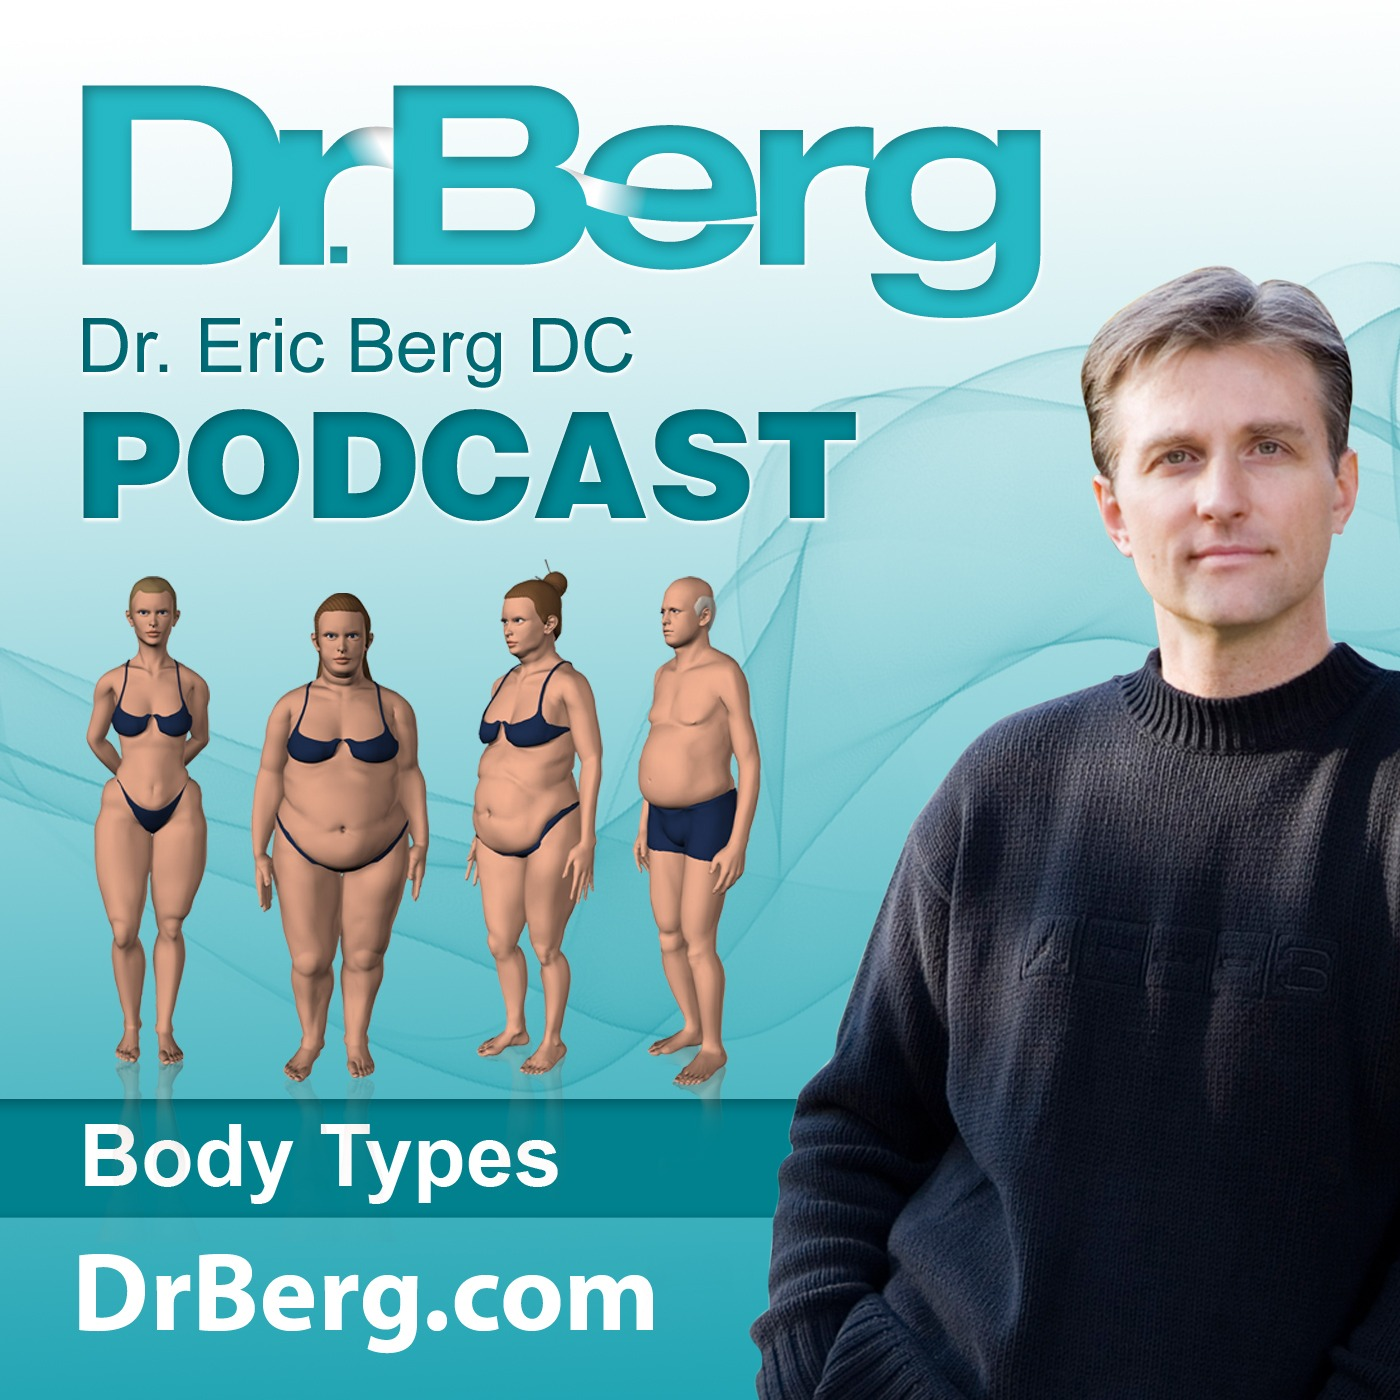 Dr. Eric Berg's Podcast